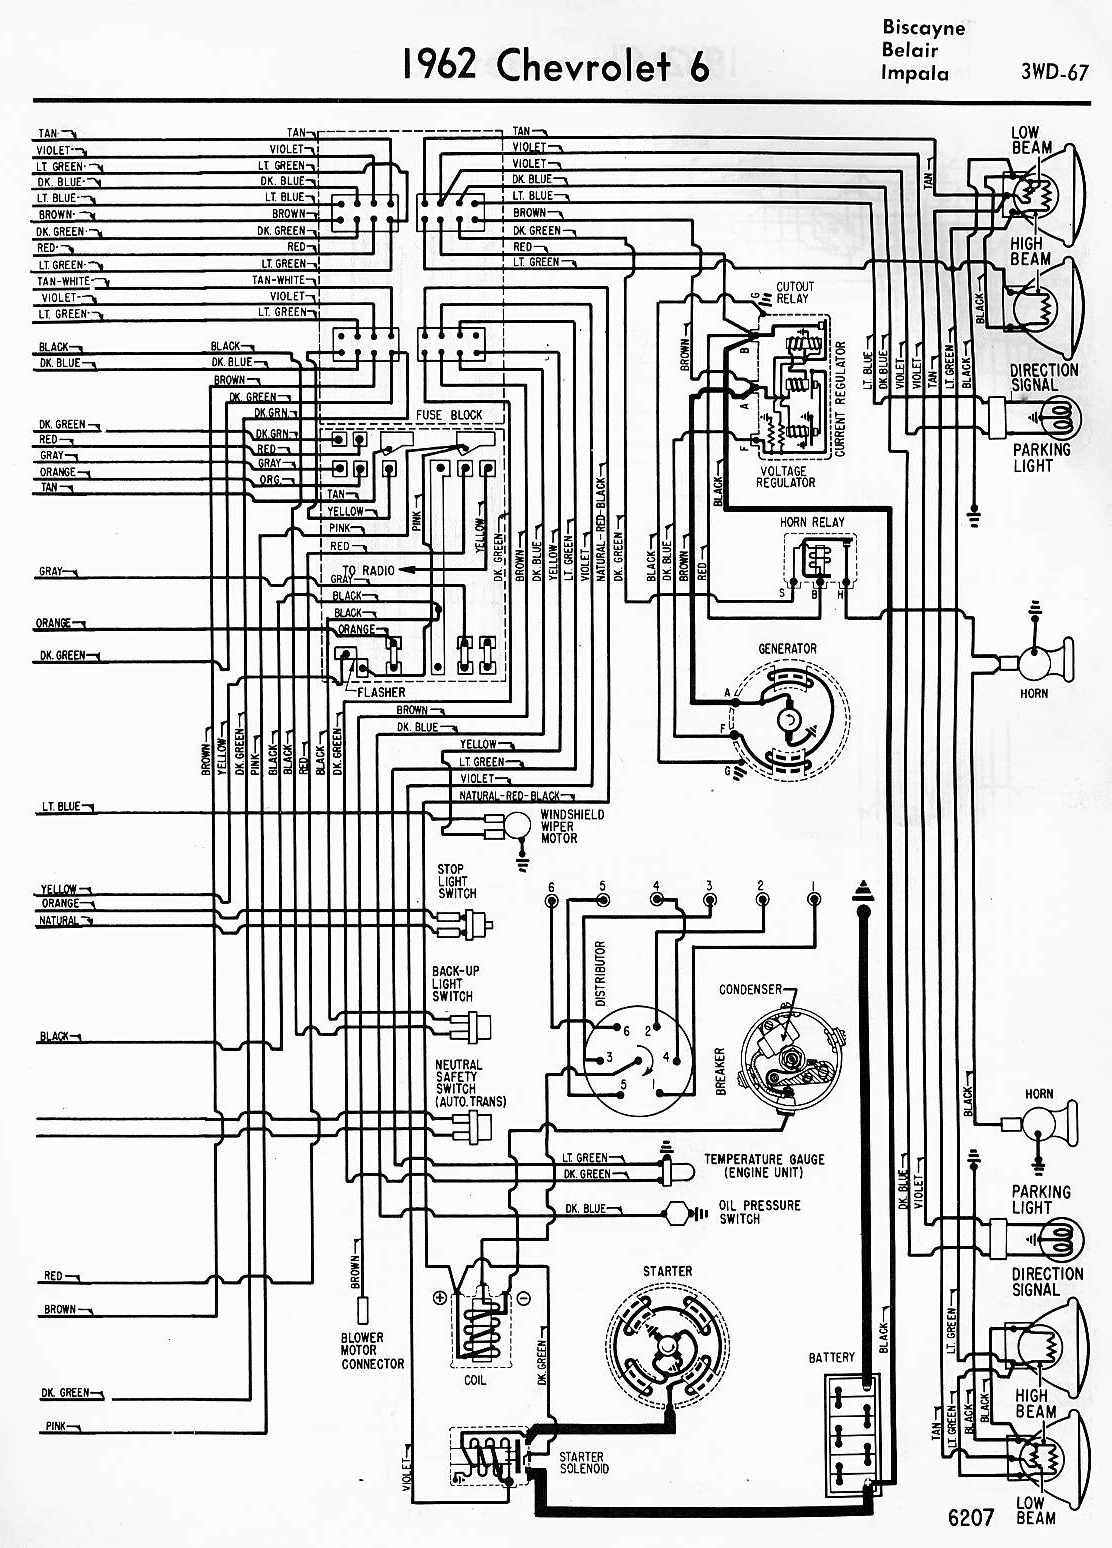 1963 impala headlight switch diagram www topsimages com 2004 chevy impala parts diagram inside diagram 1963 [ 1112 x 1548 Pixel ]